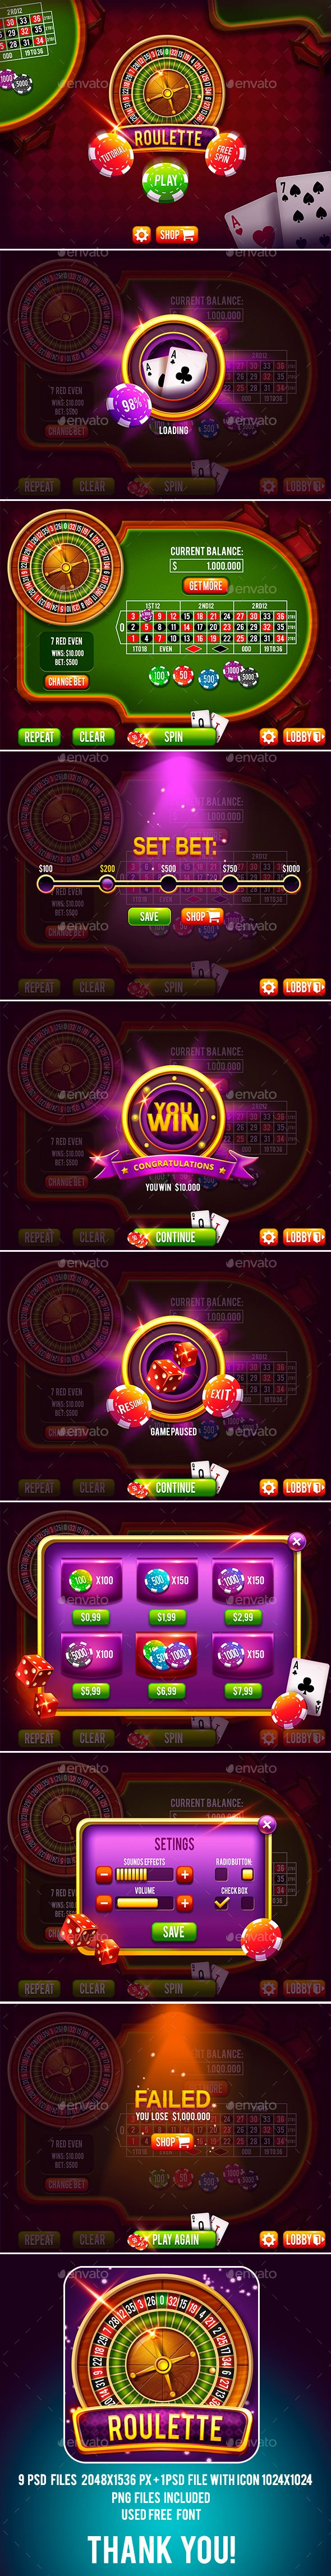 Casino Roulette Game Pack with GUI on Behance